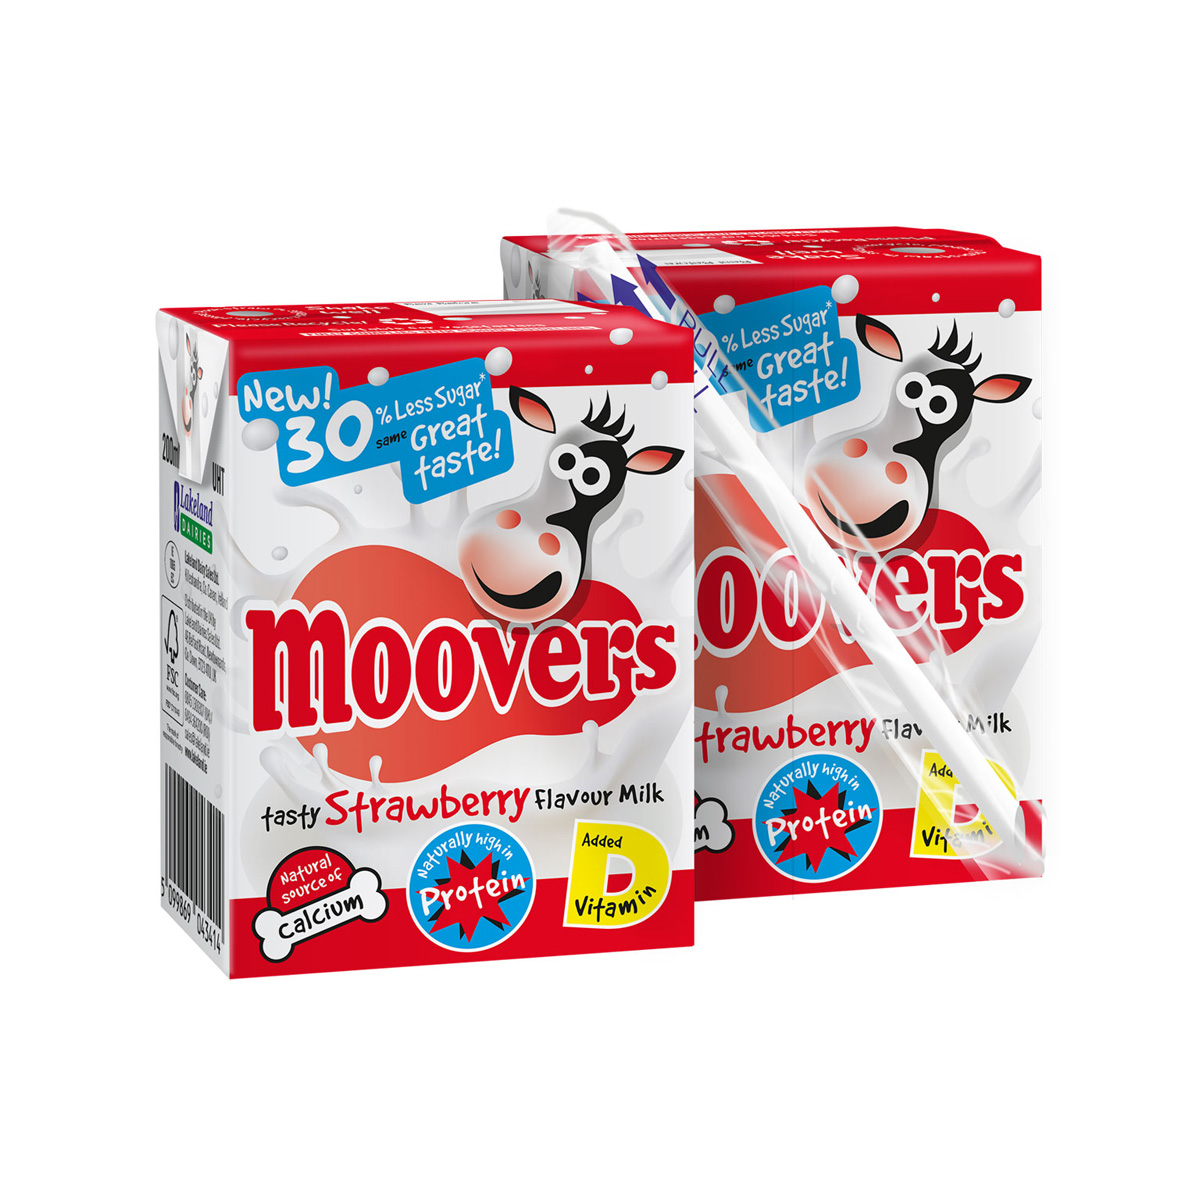 Moovers reduced sugar flavoured milk